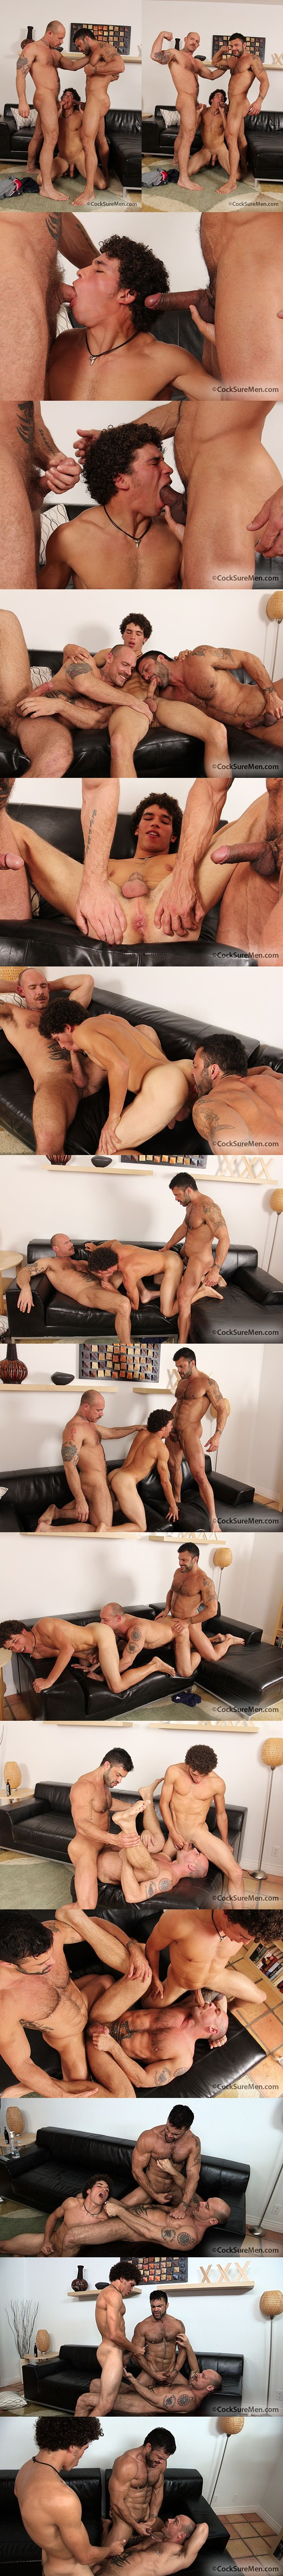 Masculine Rogan Richards fucks muscular Jake Deckard & Austin Merrick in a horny threesome at Cocksuremen 01